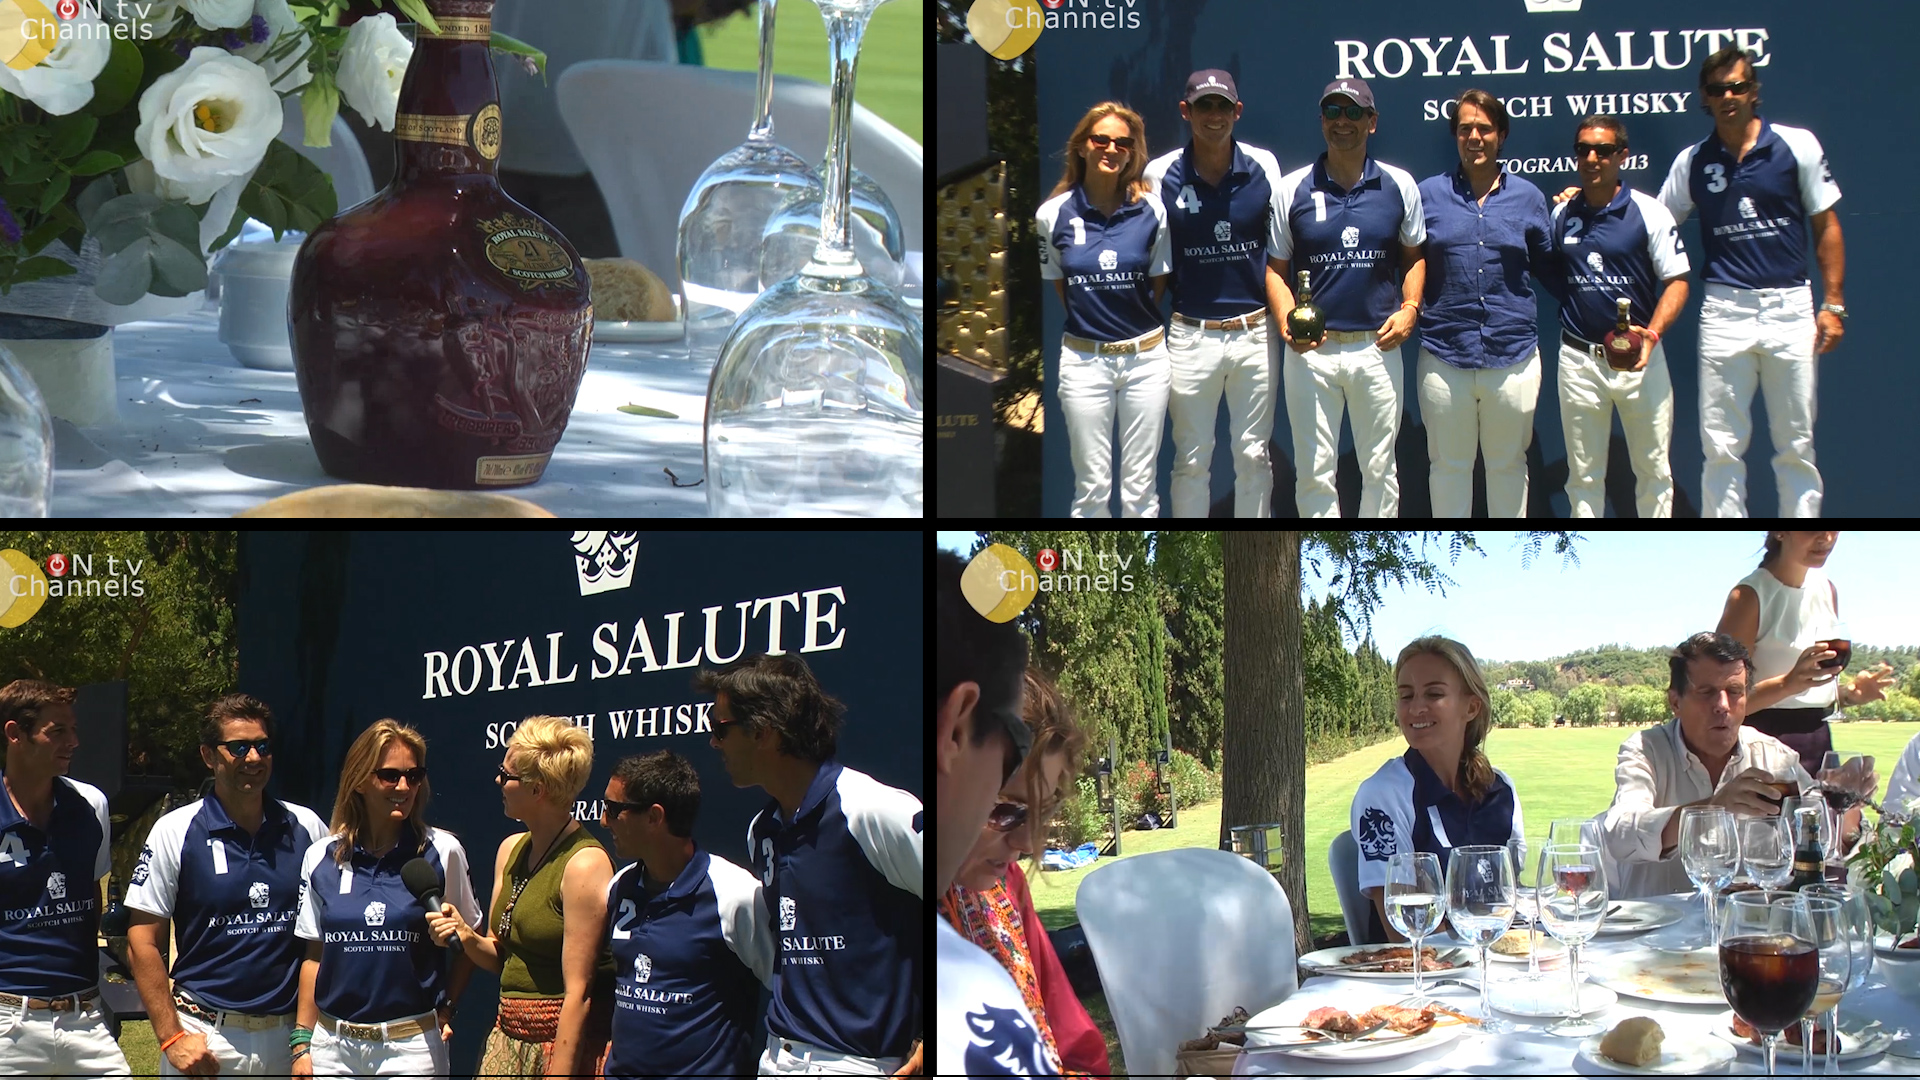 Royal Salute Scotch Whisky Polo Team – Sotogrande – Spain